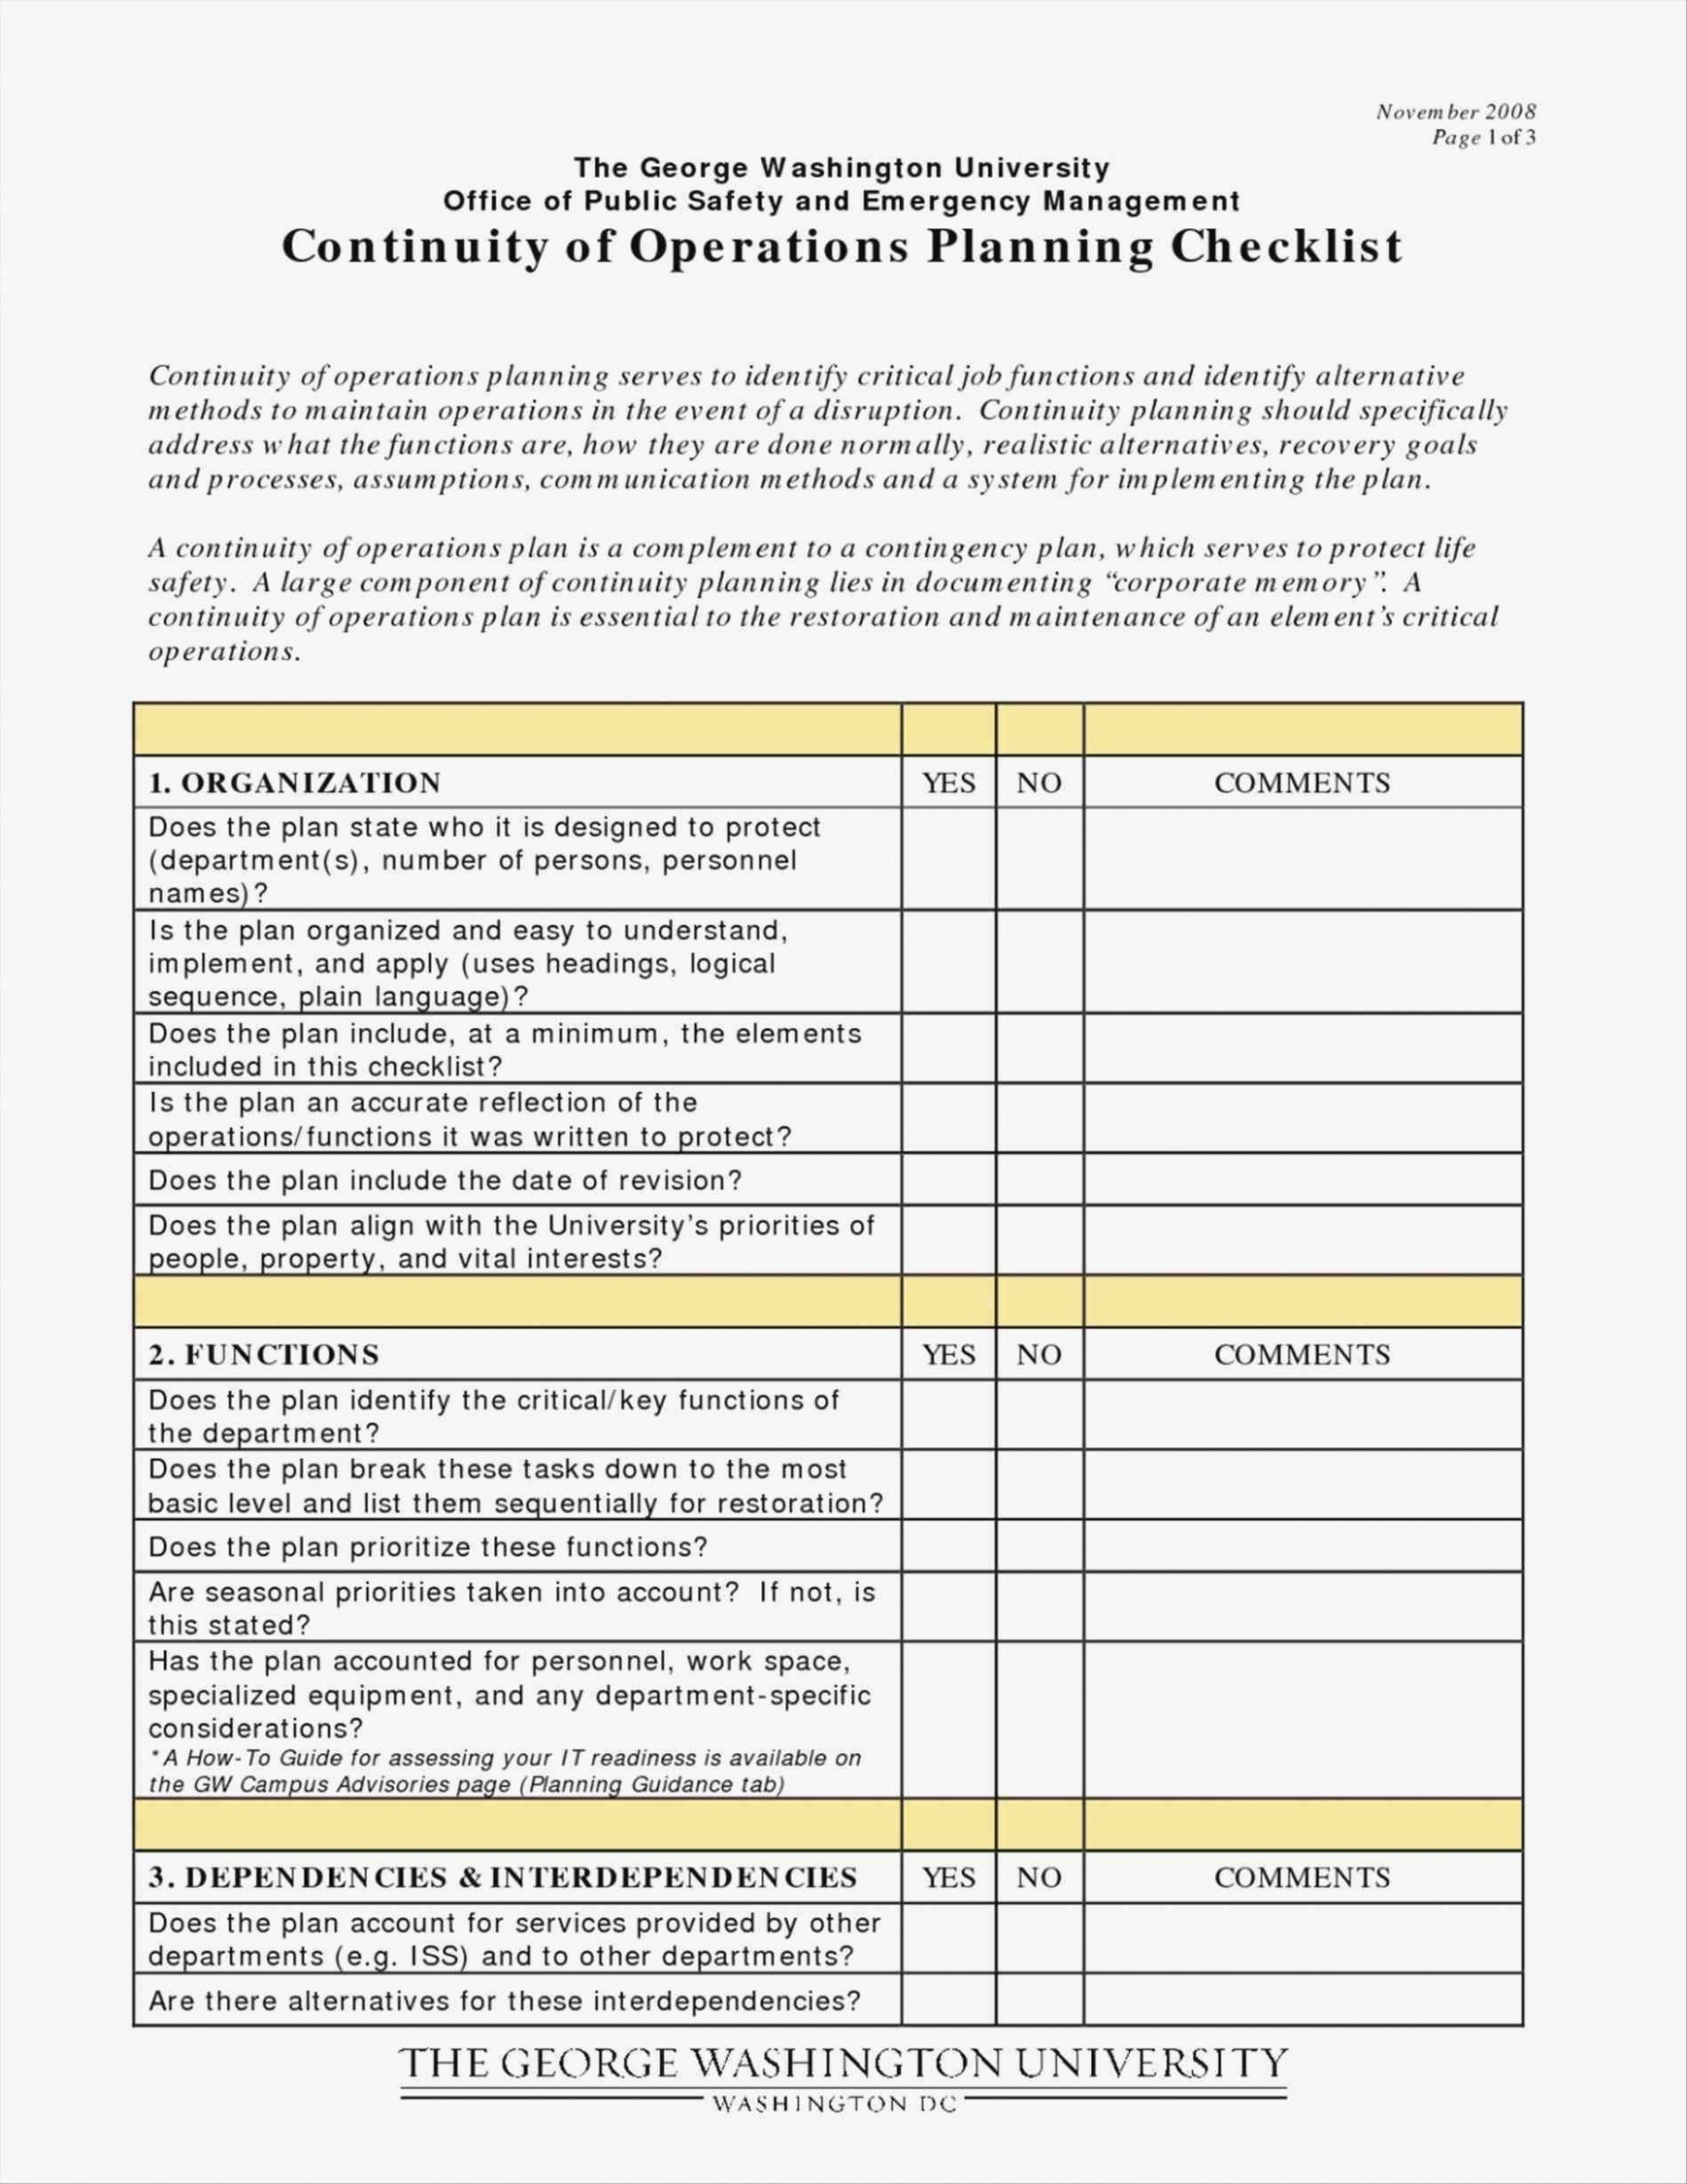 Free Osha Safety Manual Template Site Specific Safety Plan Template For Site Specific Safety Plan Template